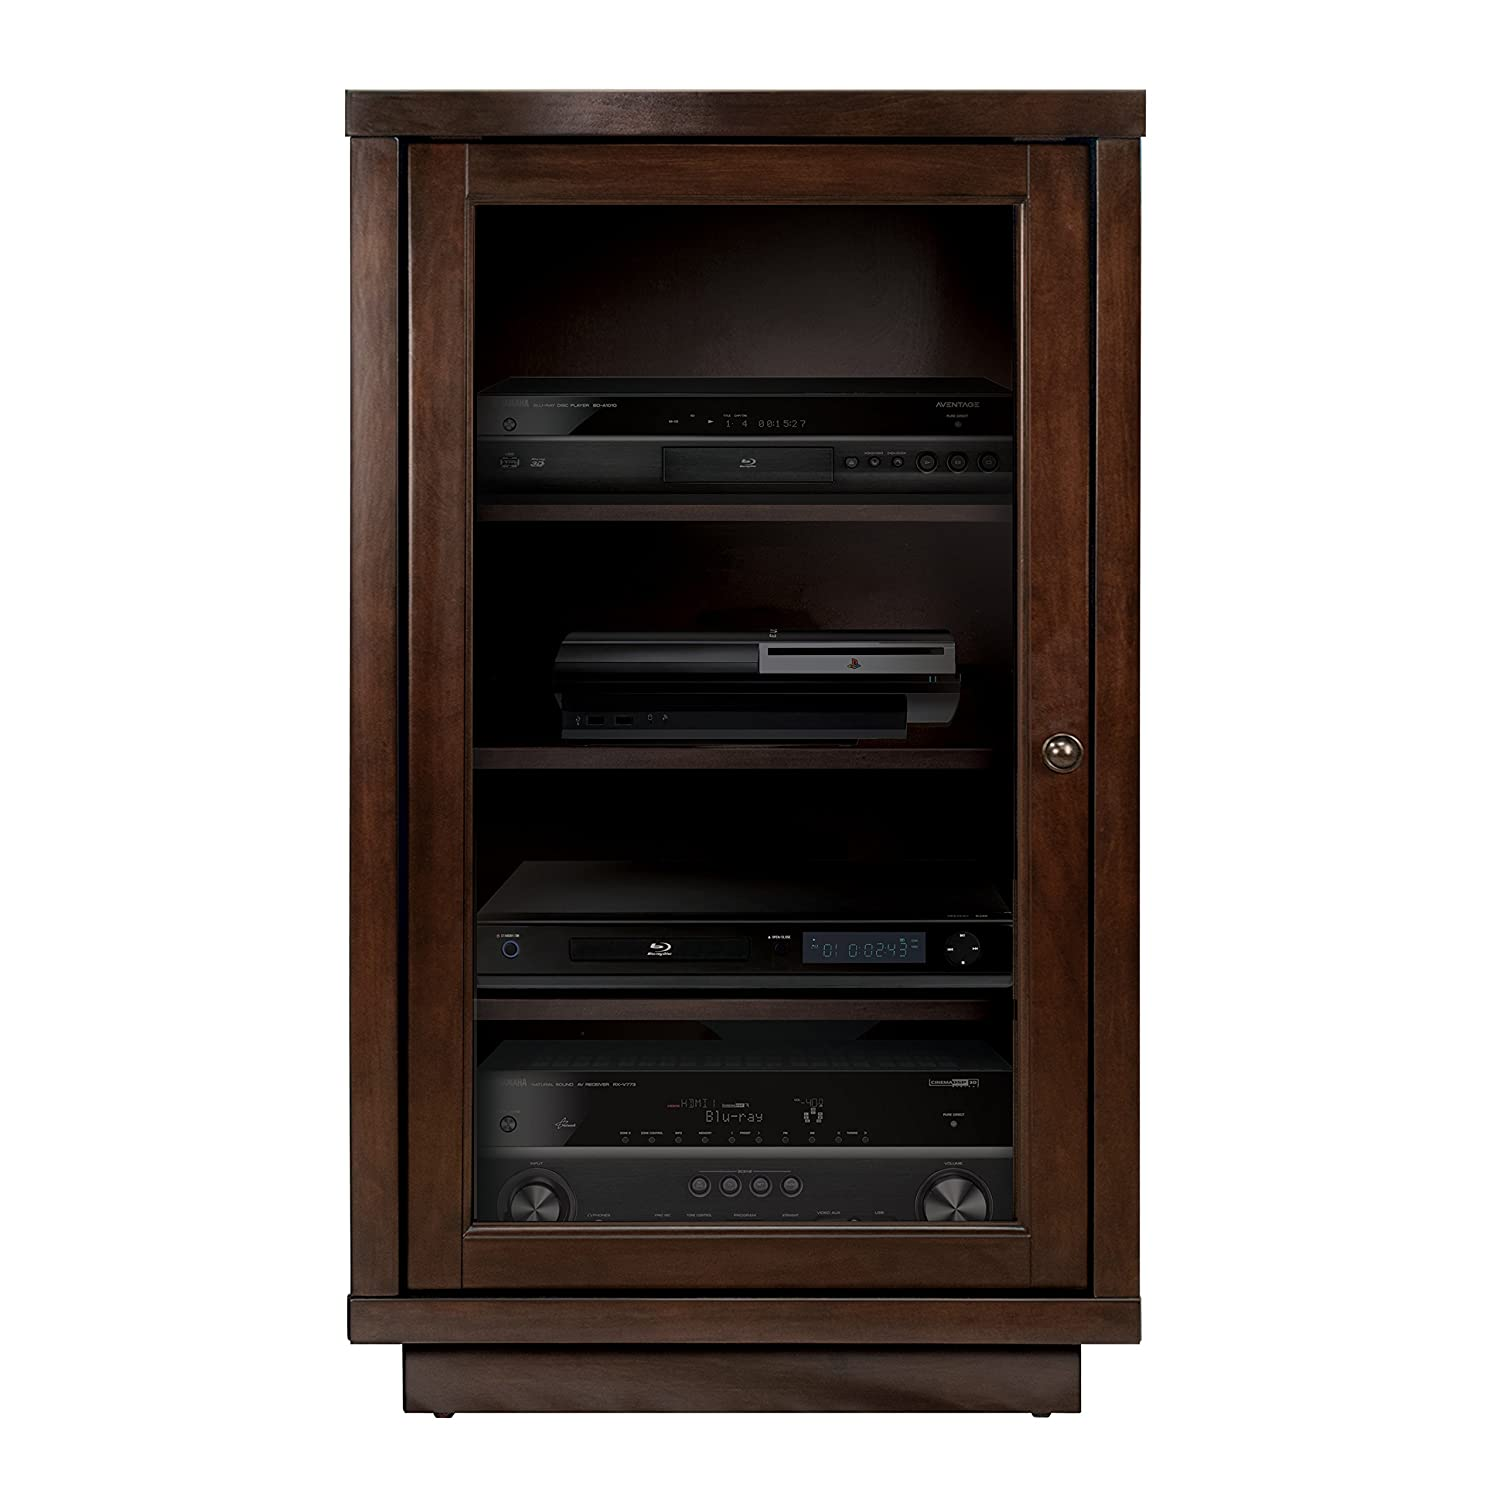 small cabinets center decoration equipment video amazoncom media component com for devices it mount gaming components amazon best streaming consoles gallery entertainment cabinet shelves tv stand audio stereo